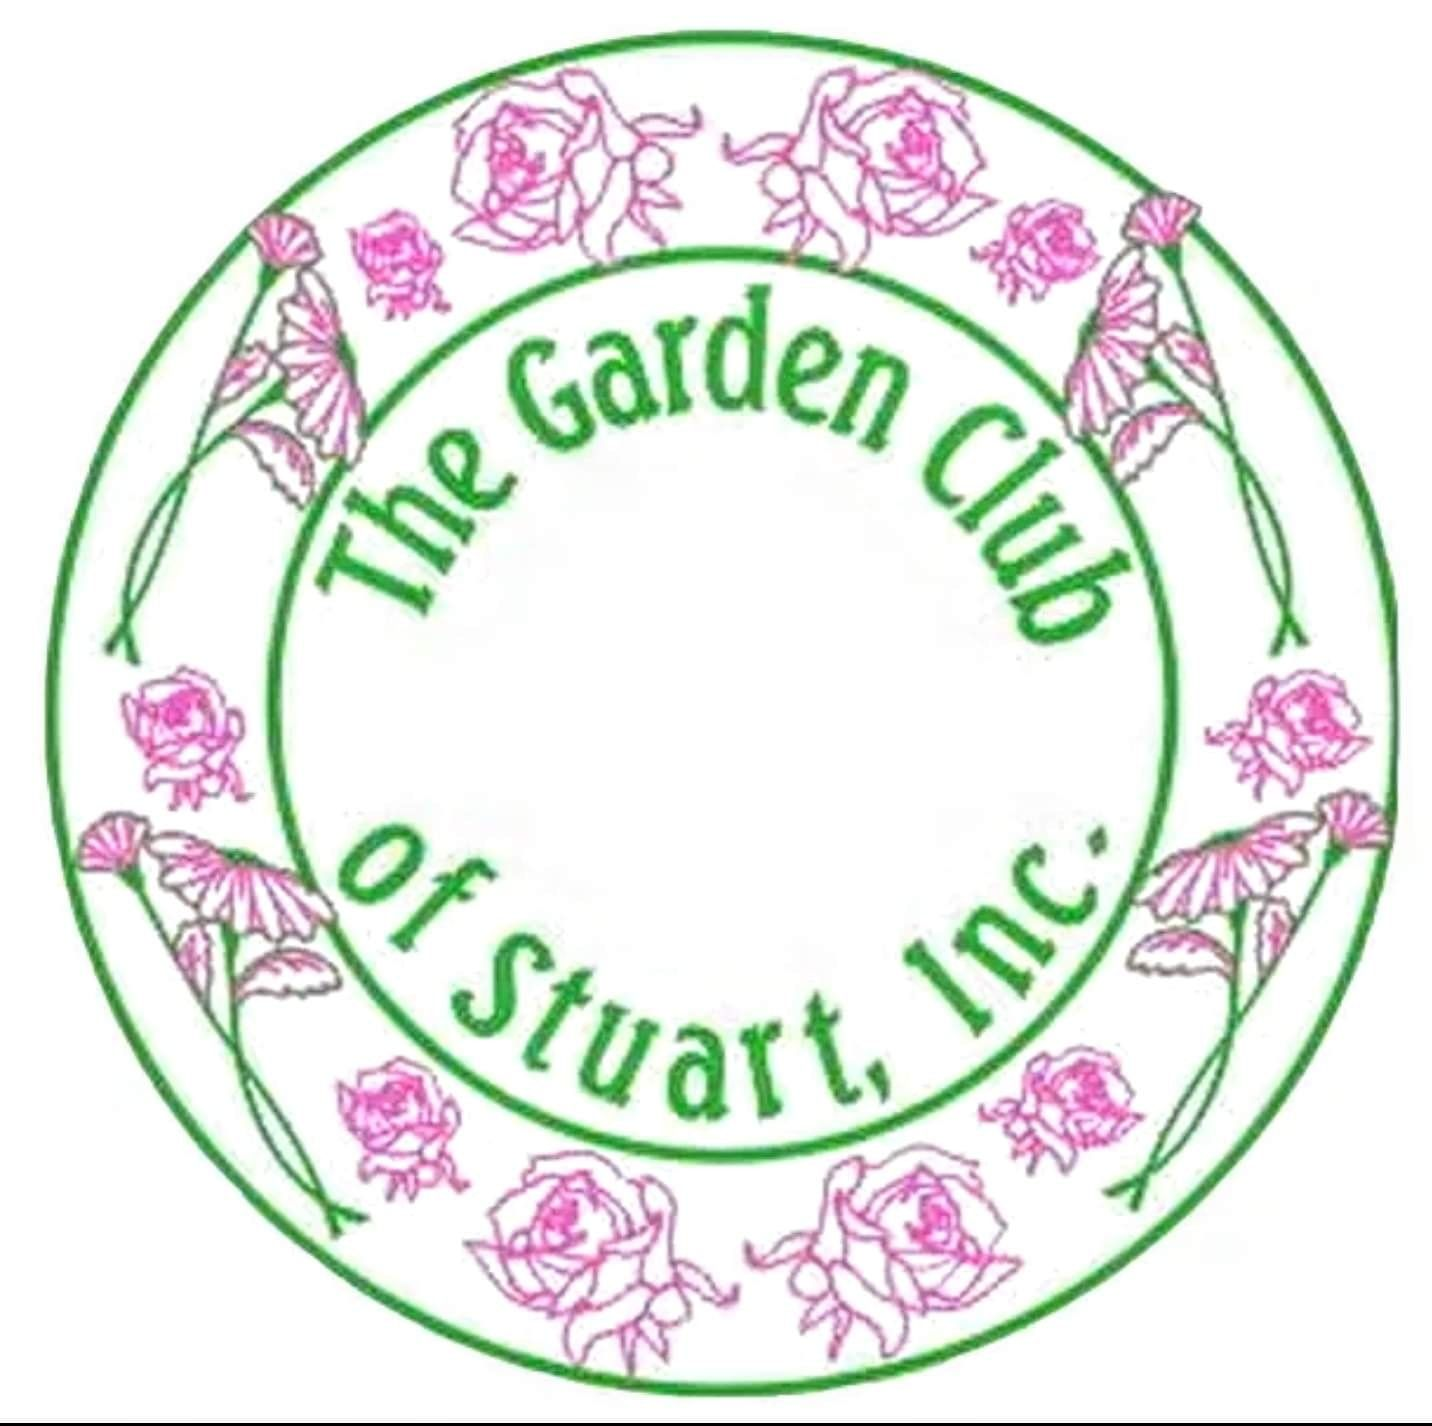 Garden Club of Stuart